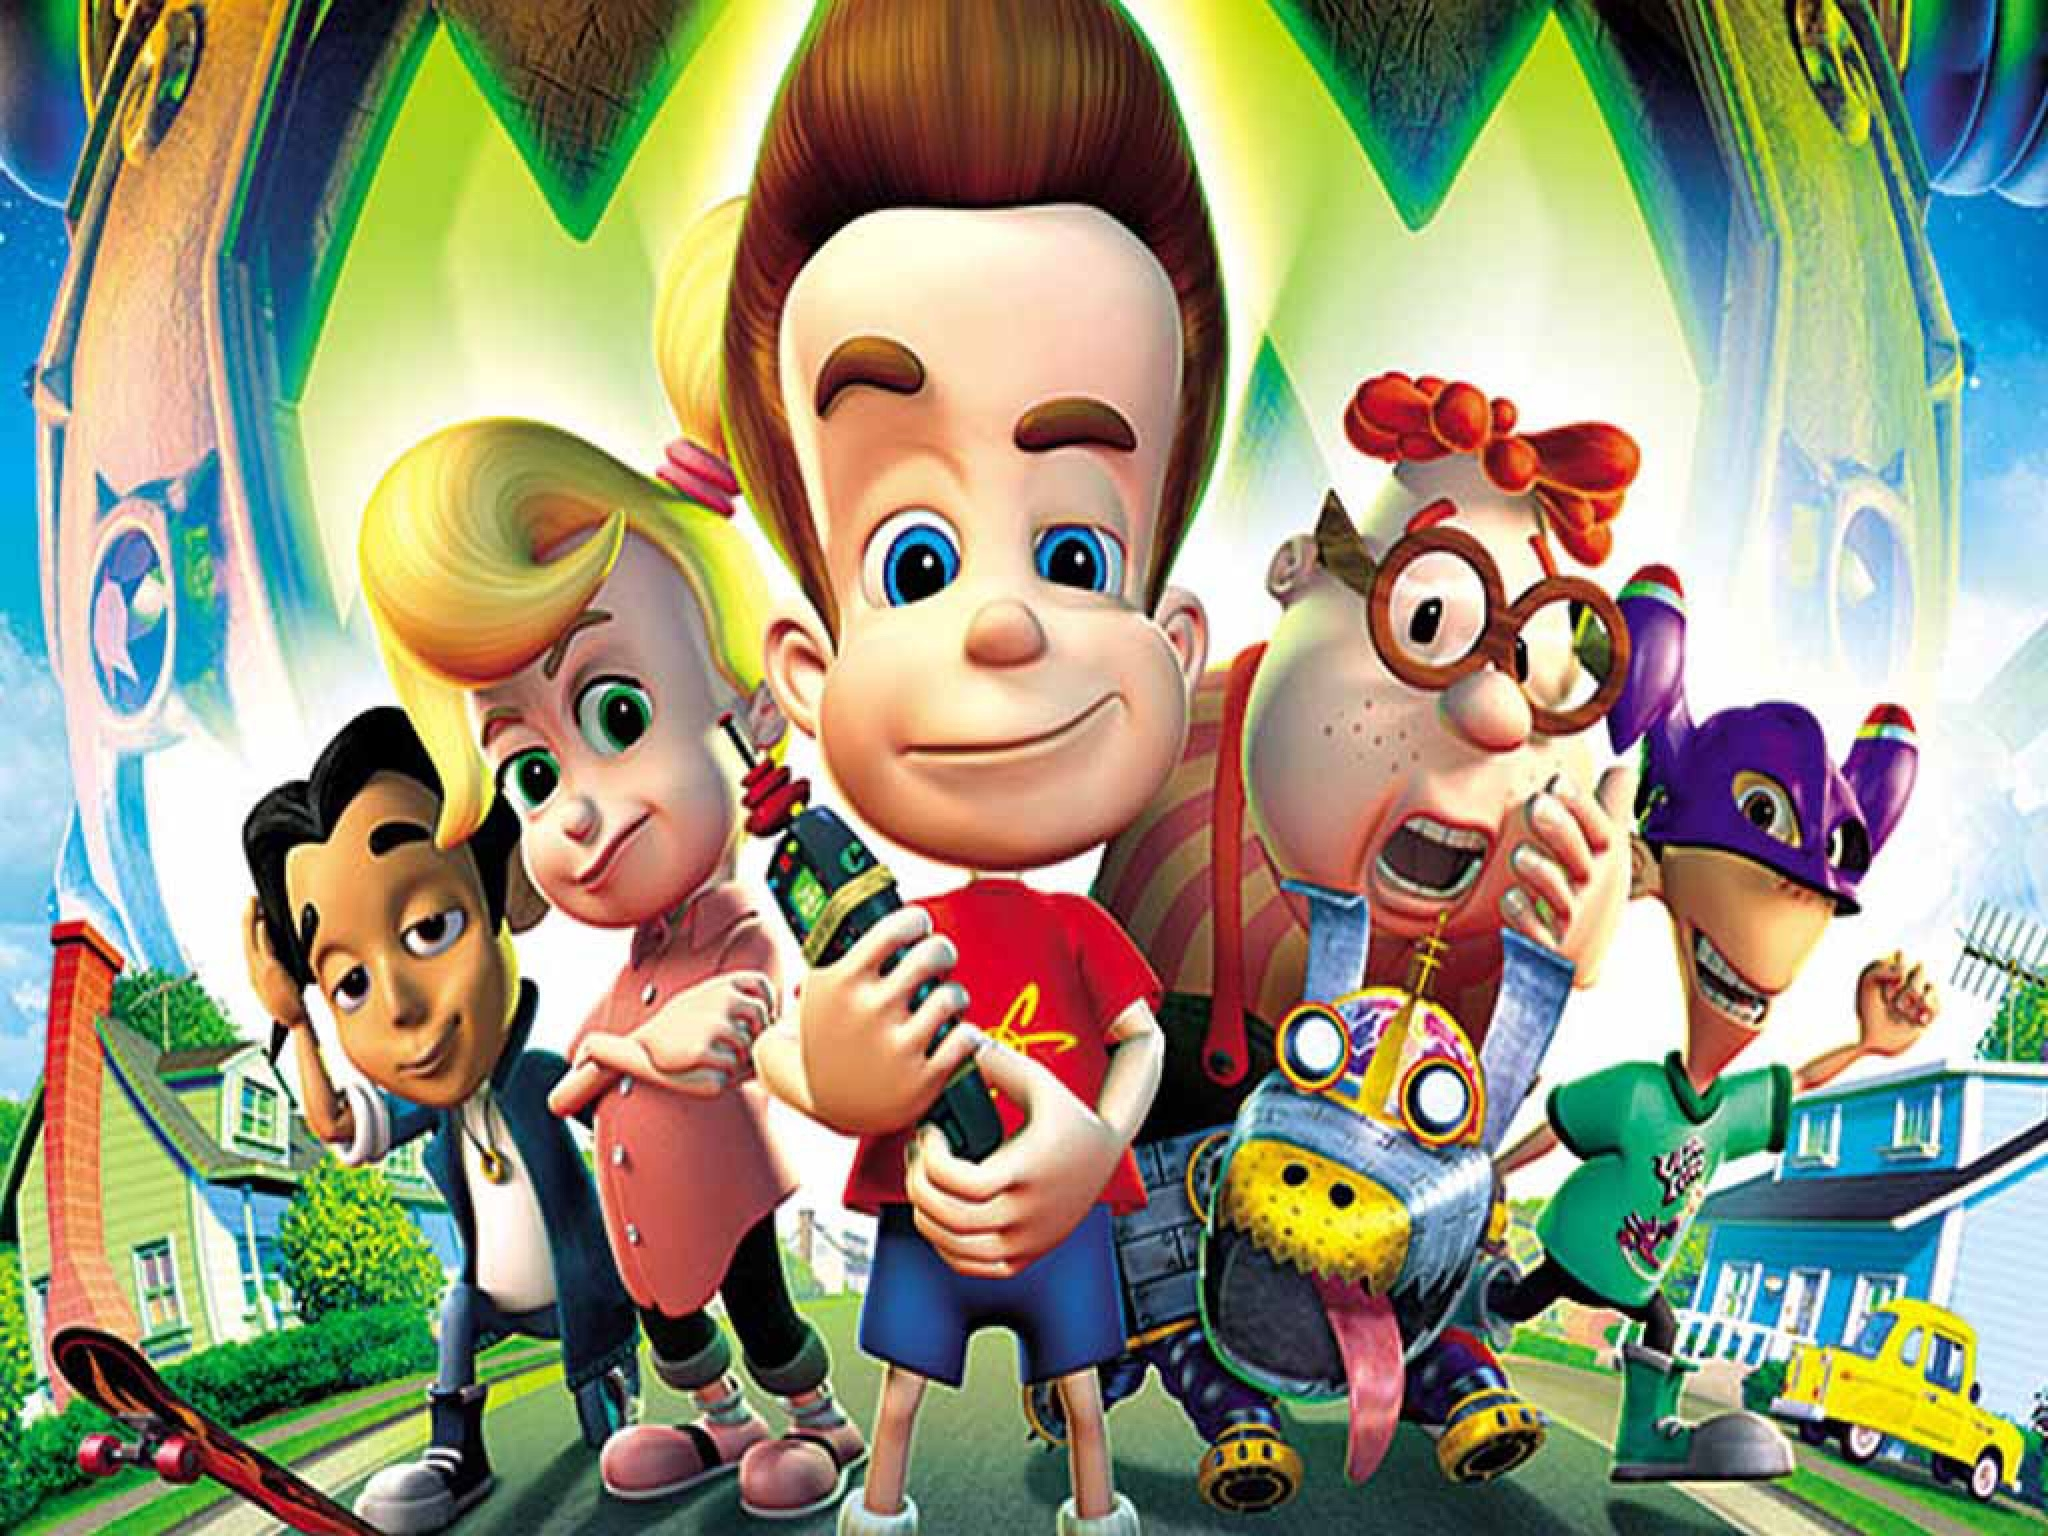 Jimmy neutron all characters wallpaper   Nickelodeon and Disney 2048x1536